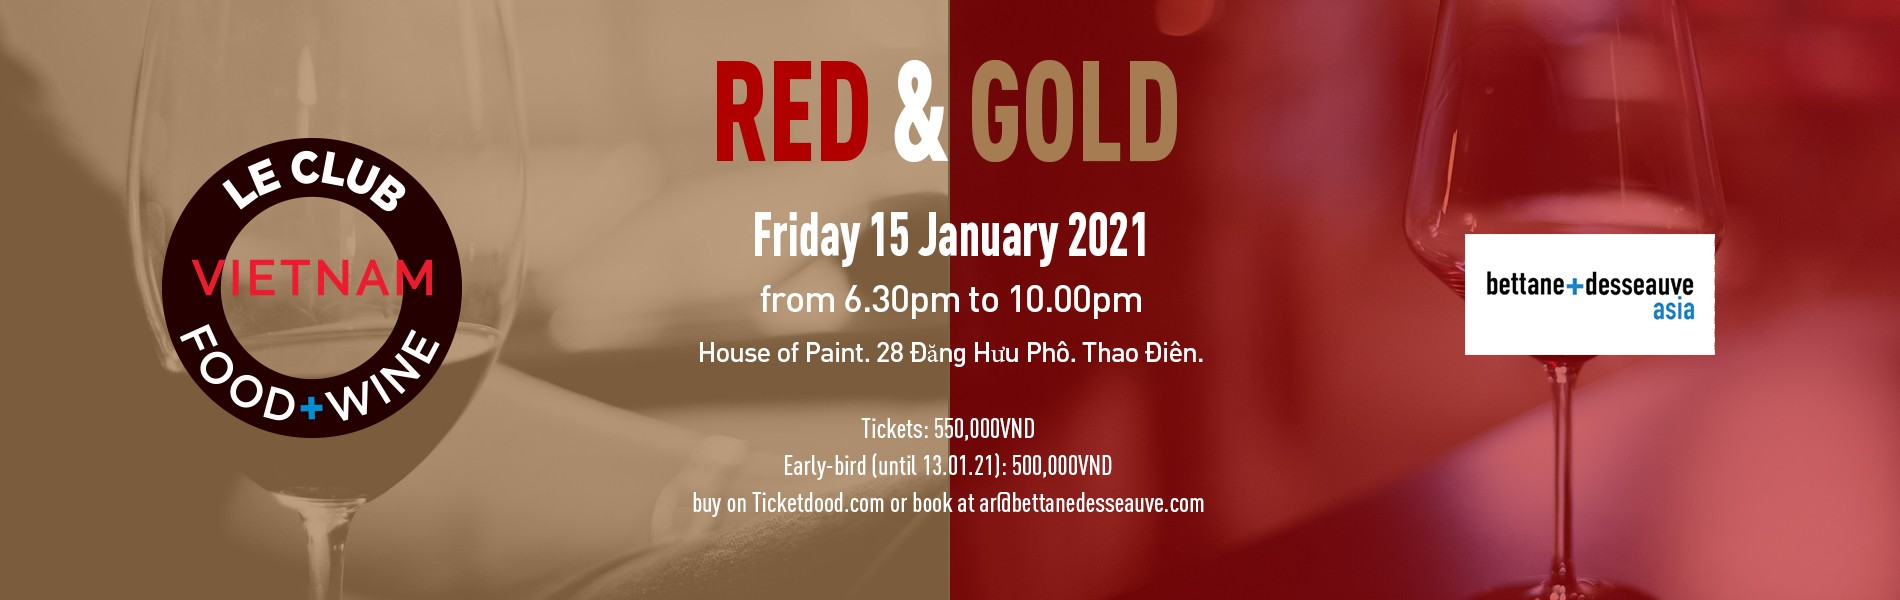 Le Club Food & Wine - Red & Gold. 15 January 2021